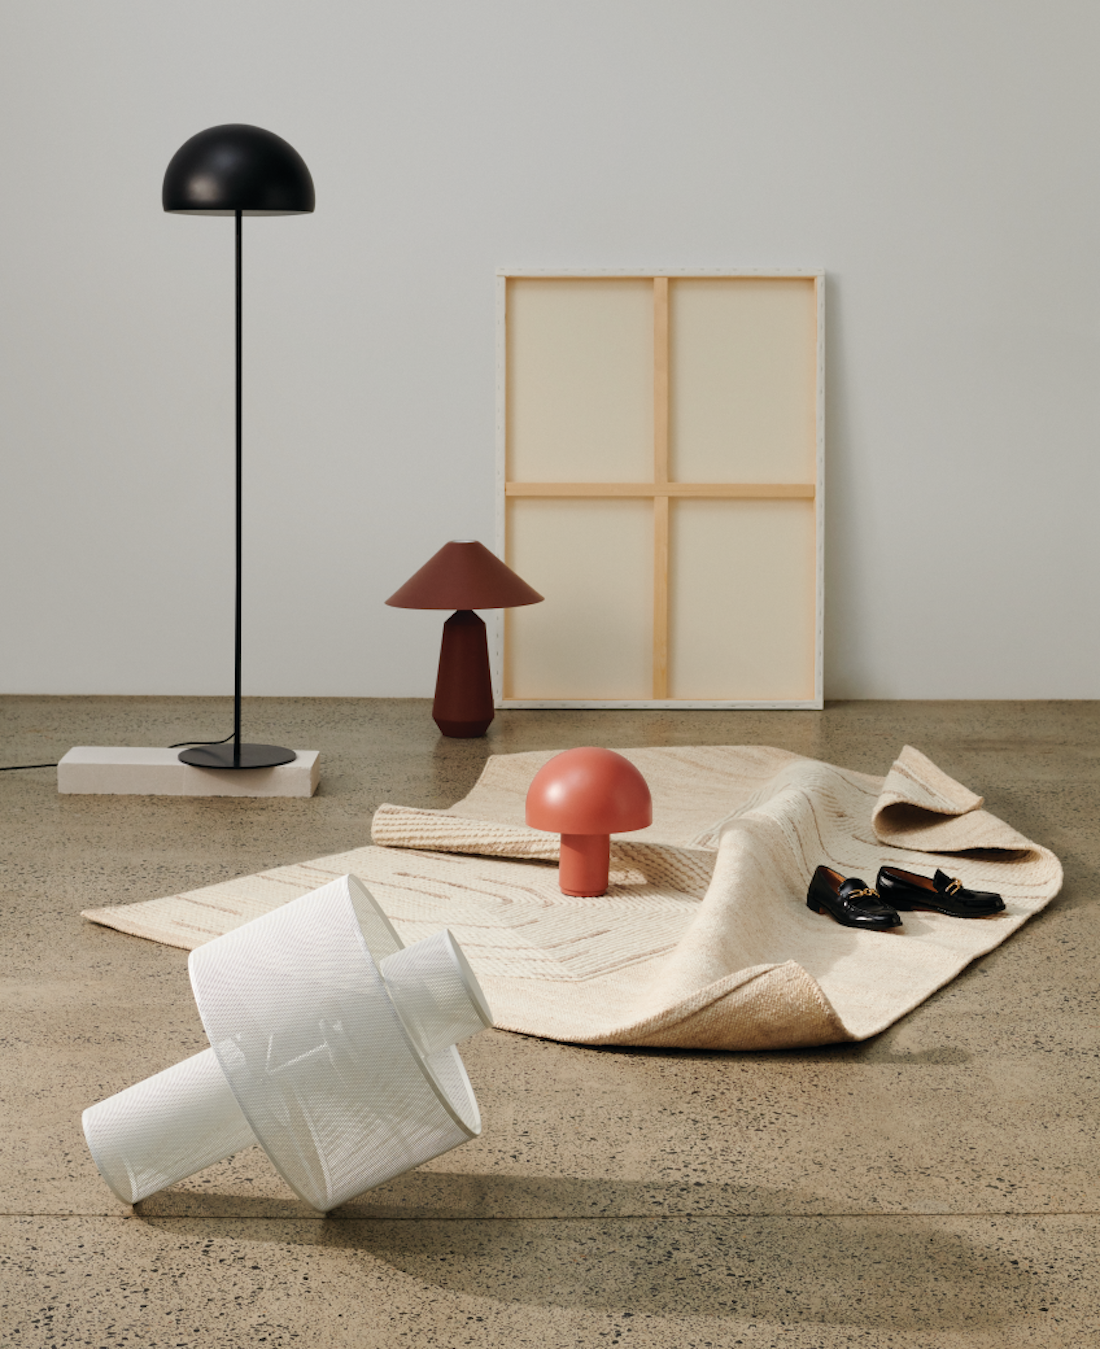 A range of short and tall mushroom lamps sit on a concrete floor.